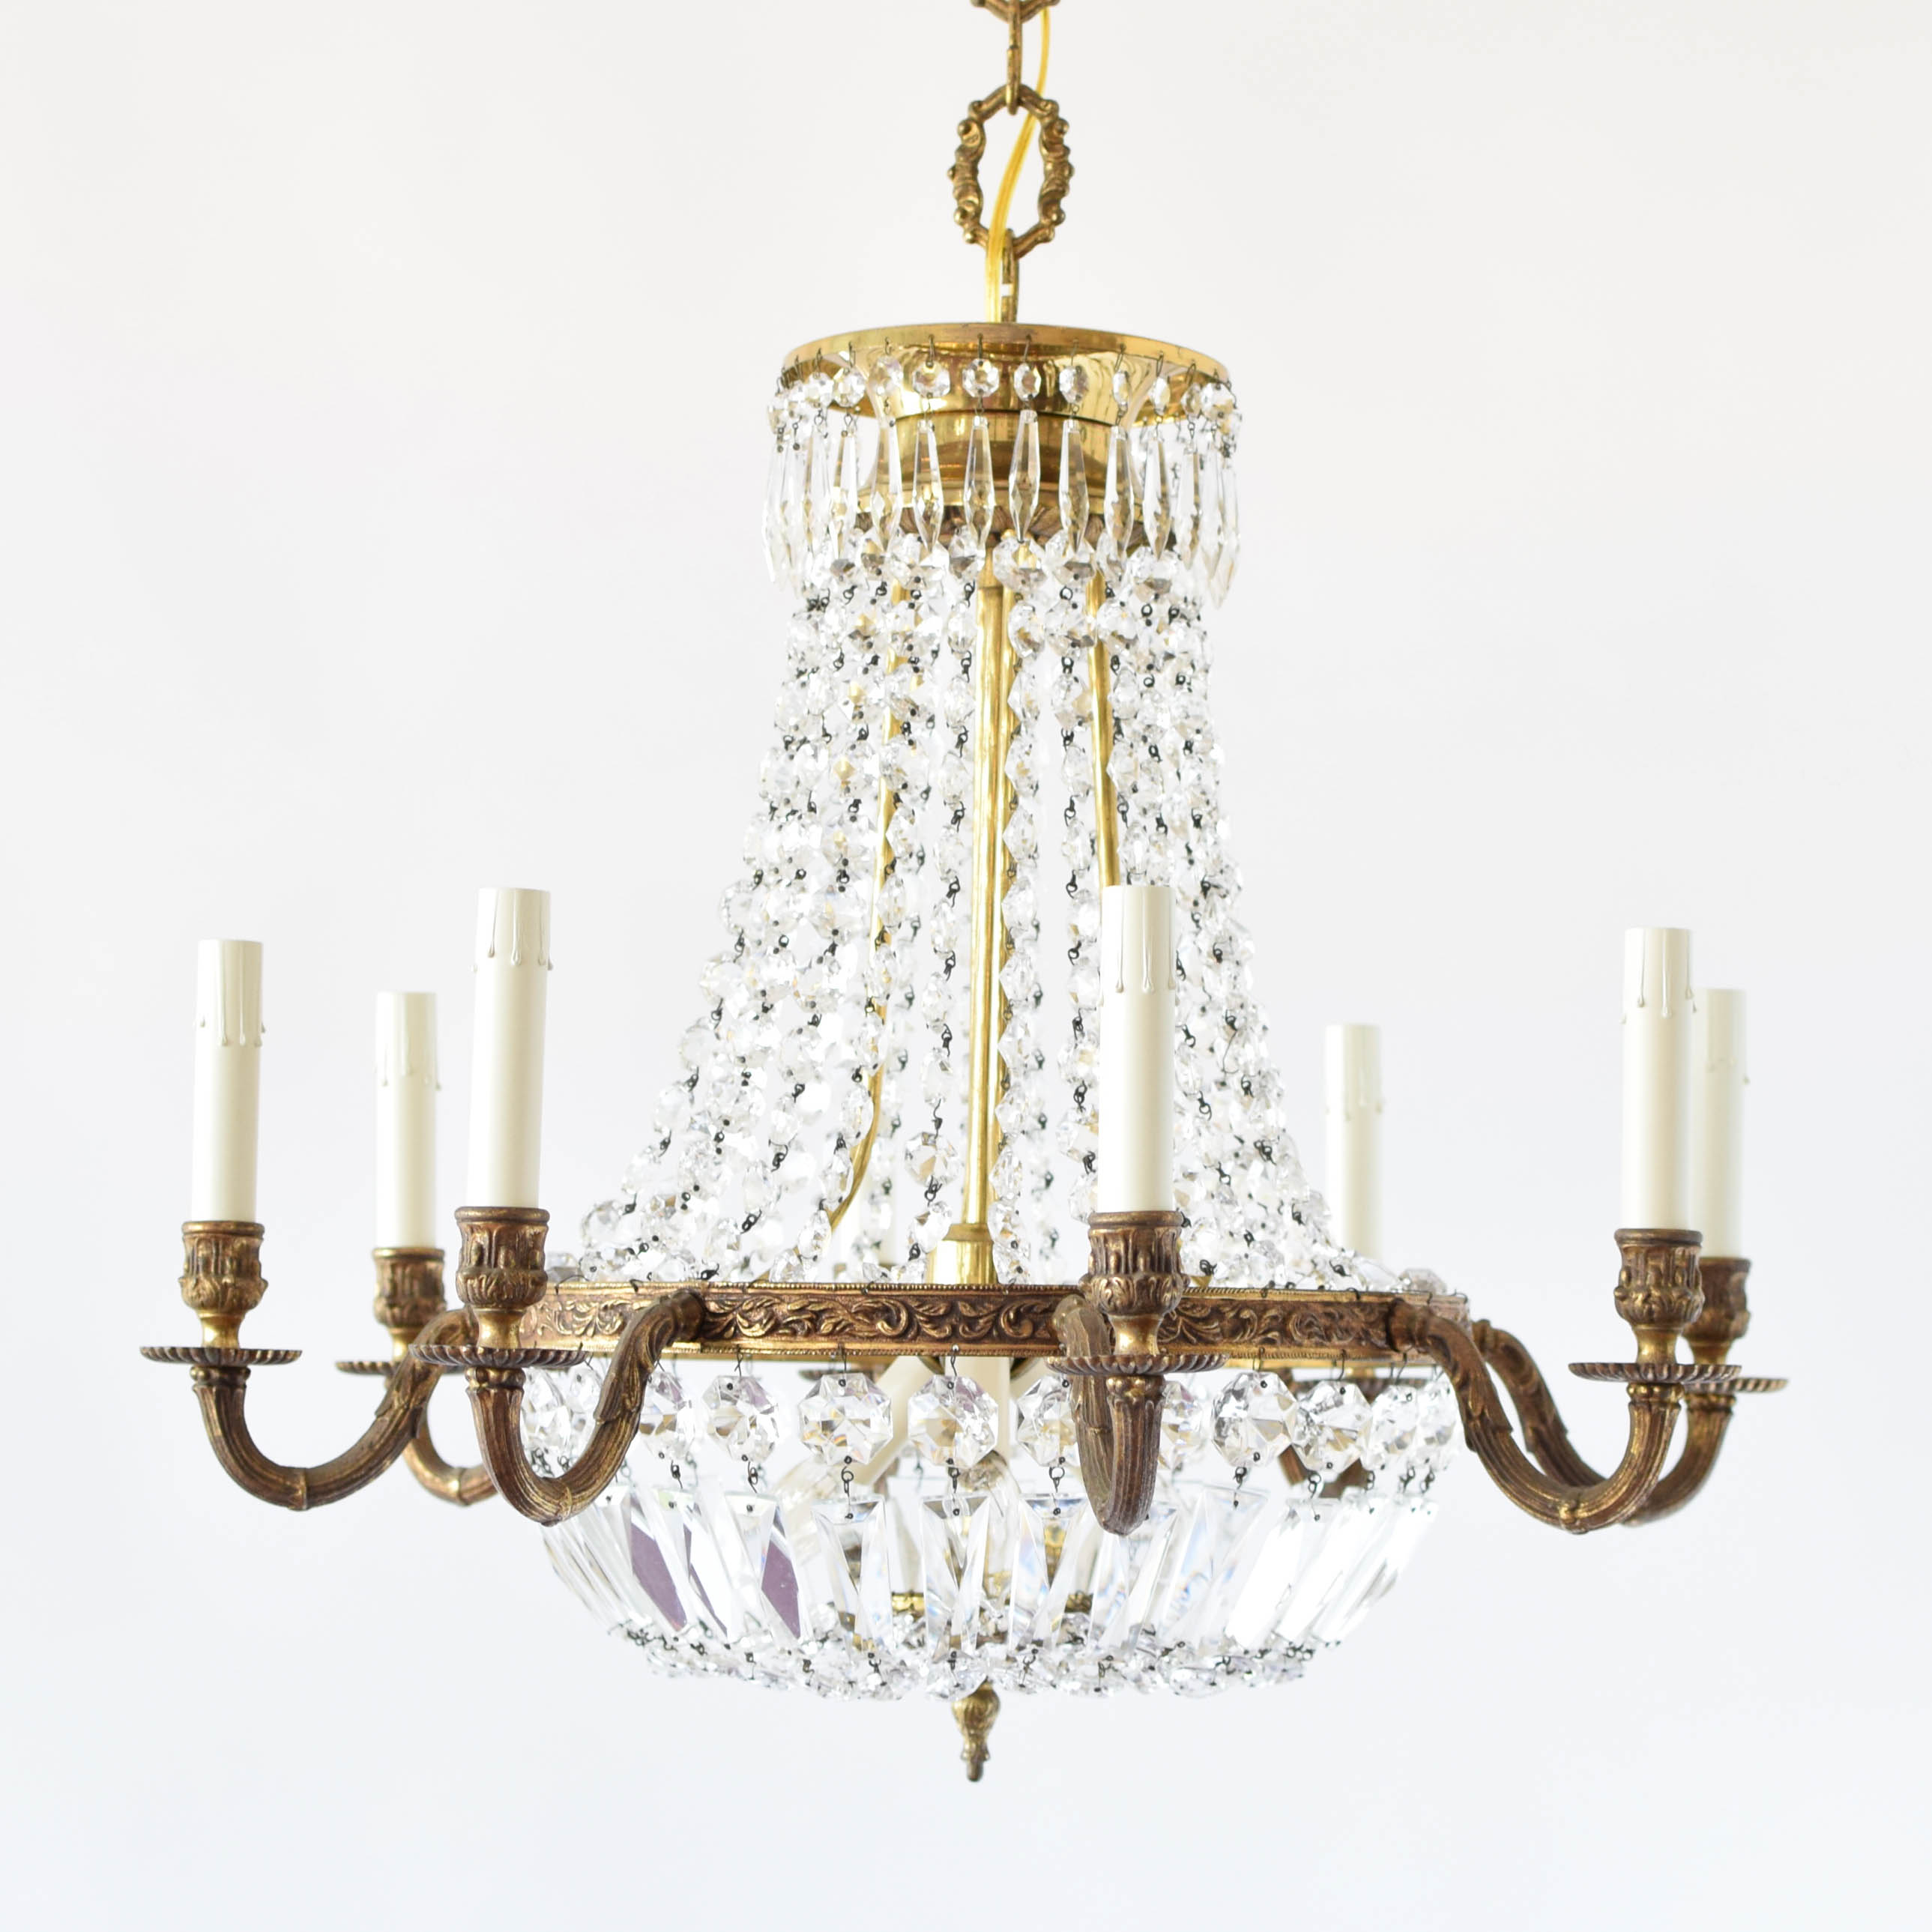 lighting design fashioned leaf chandelier up golden home simple old antique macaroni beads gold livex